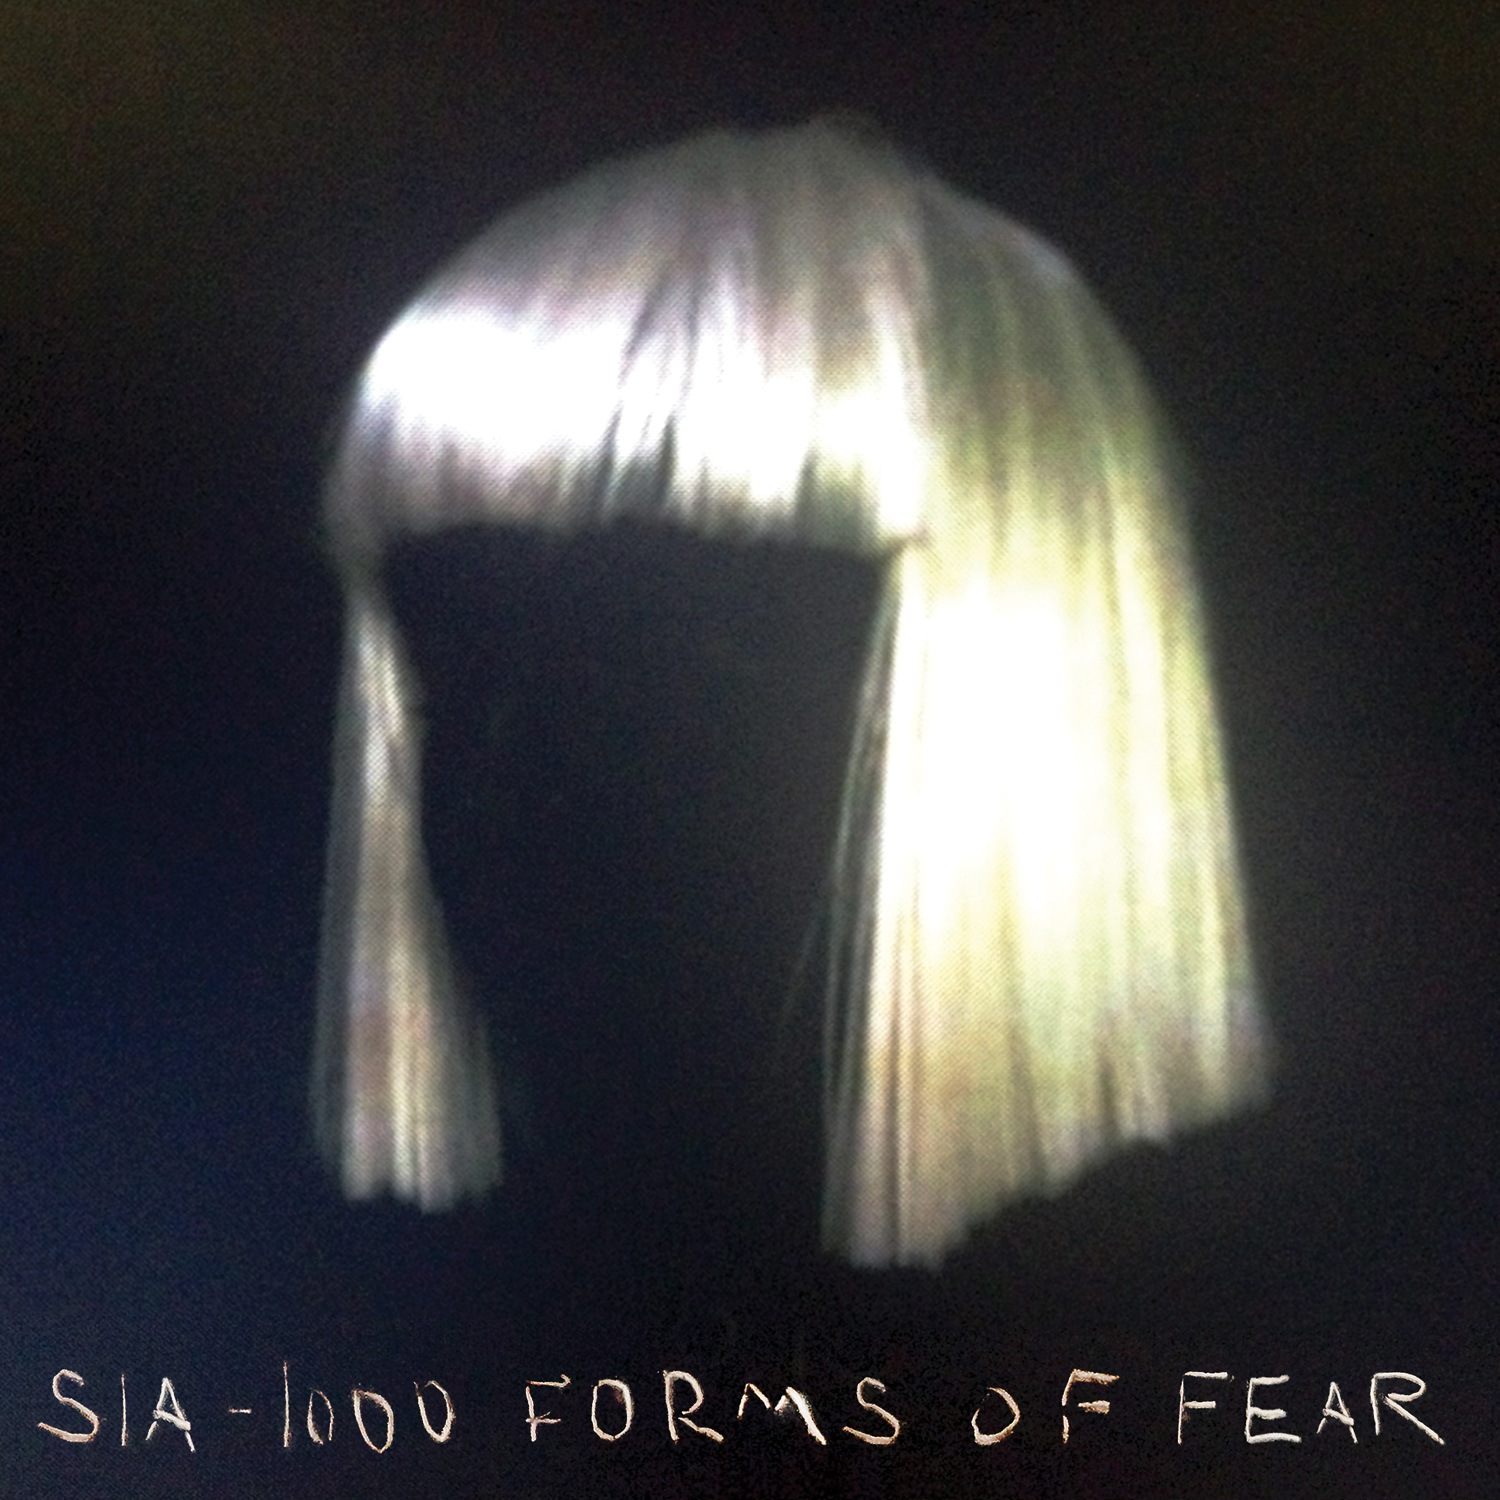 download 1000 forms of fear kickass